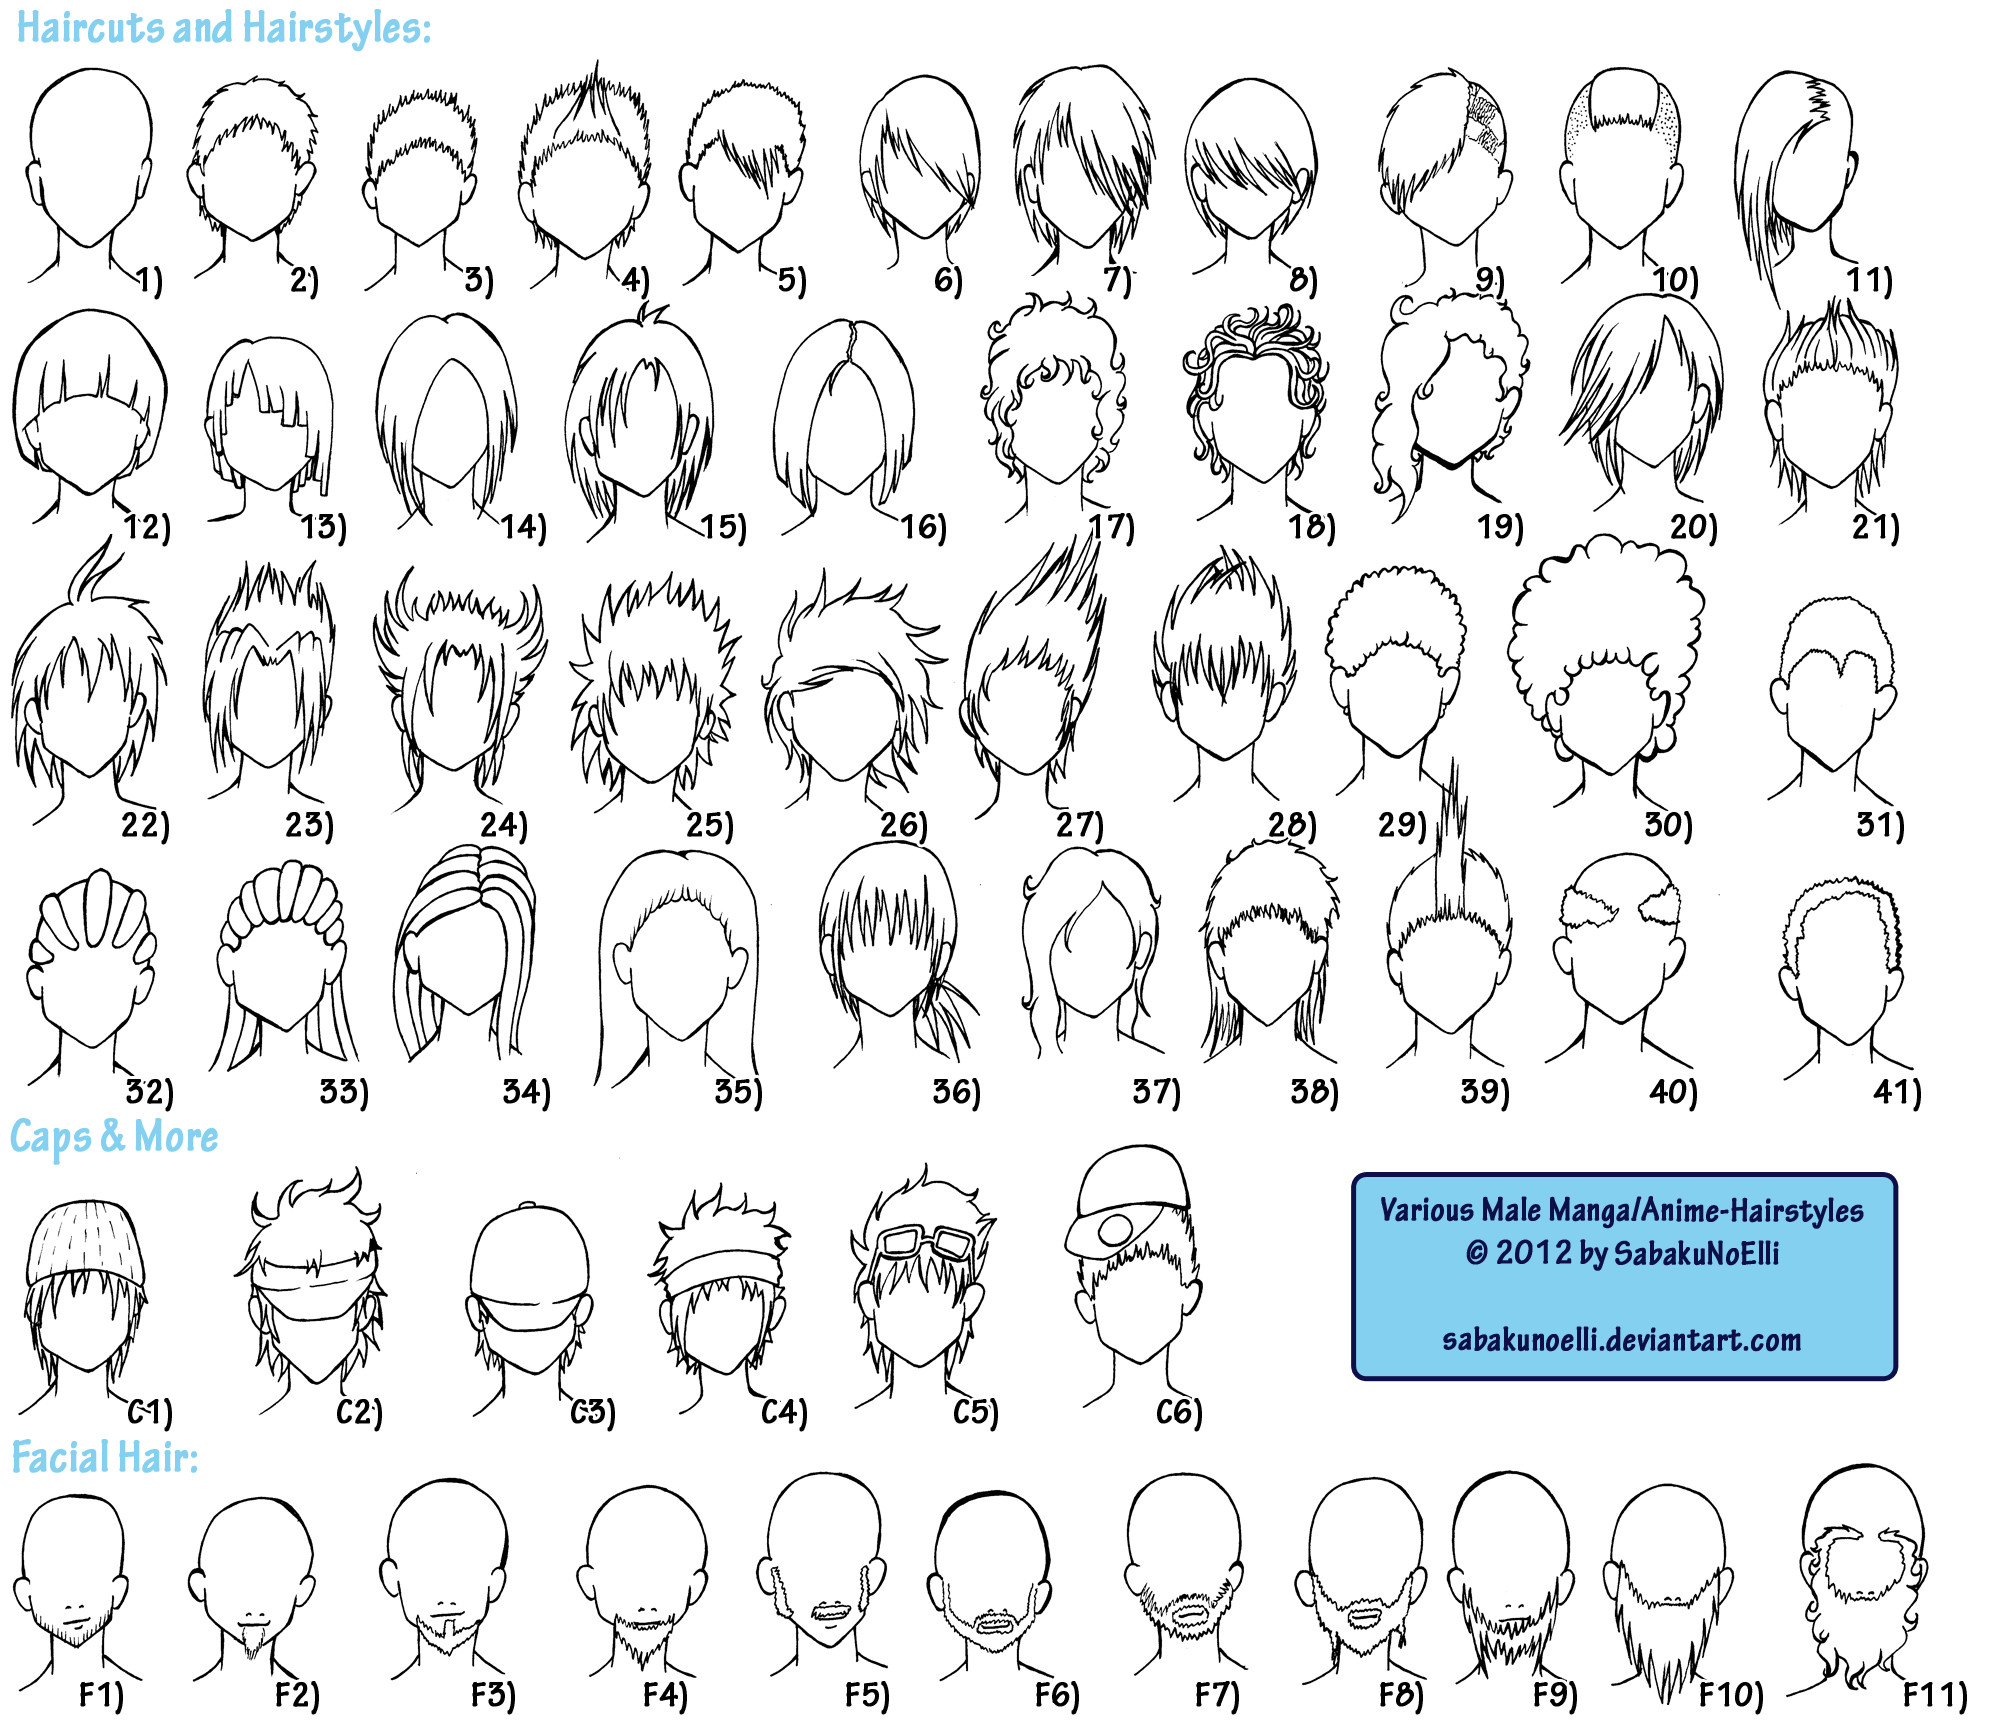 Best ideas about Male Anime Hairstyles . Save or Pin Various Male Anime Manga Hairstyles by Elythe on DeviantArt Now.